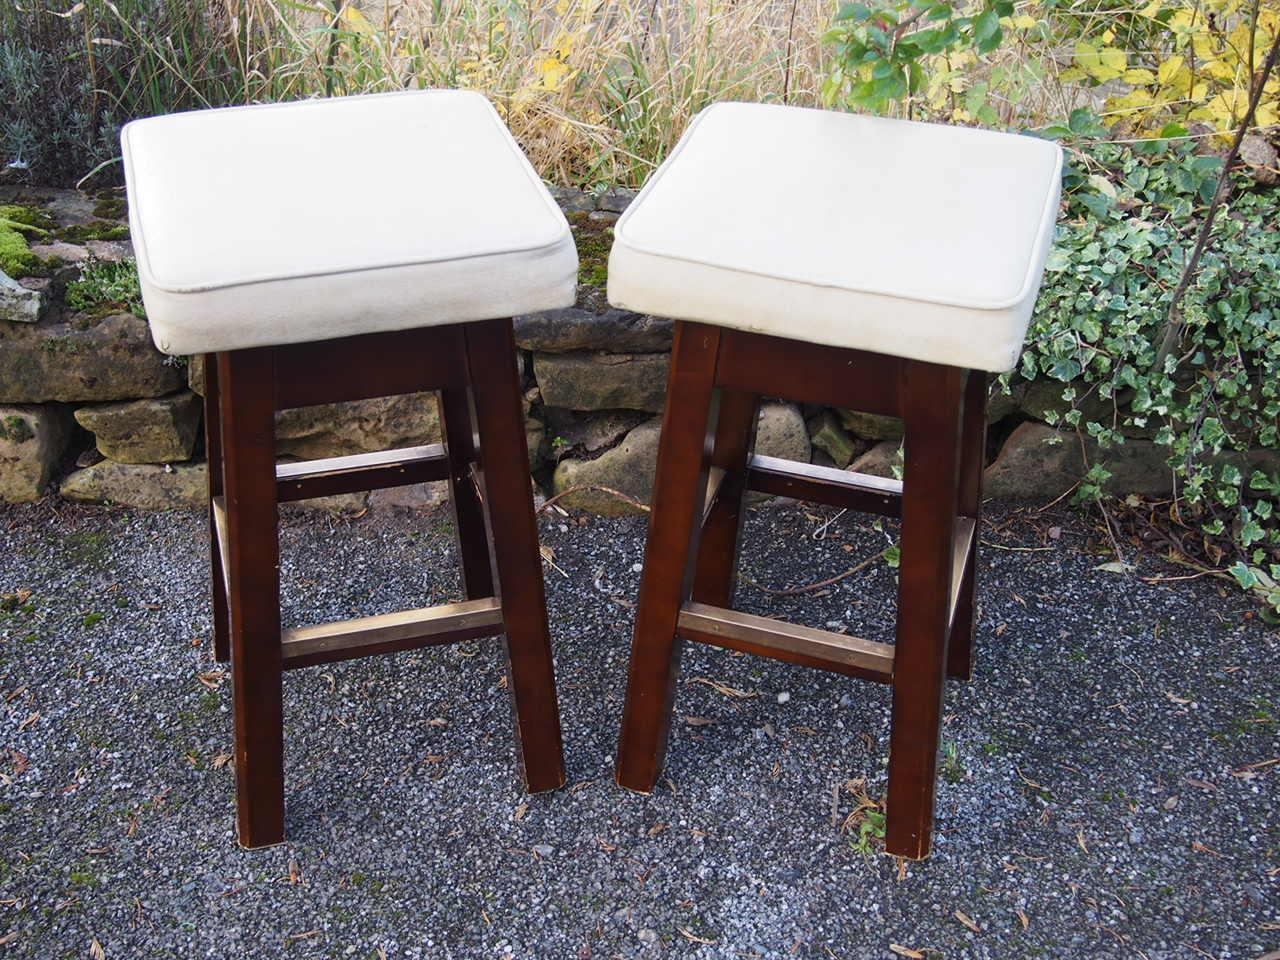 Retro Vintage Pair of Cream Leatherette Bar Stools Wooden Frame & Metal Feature